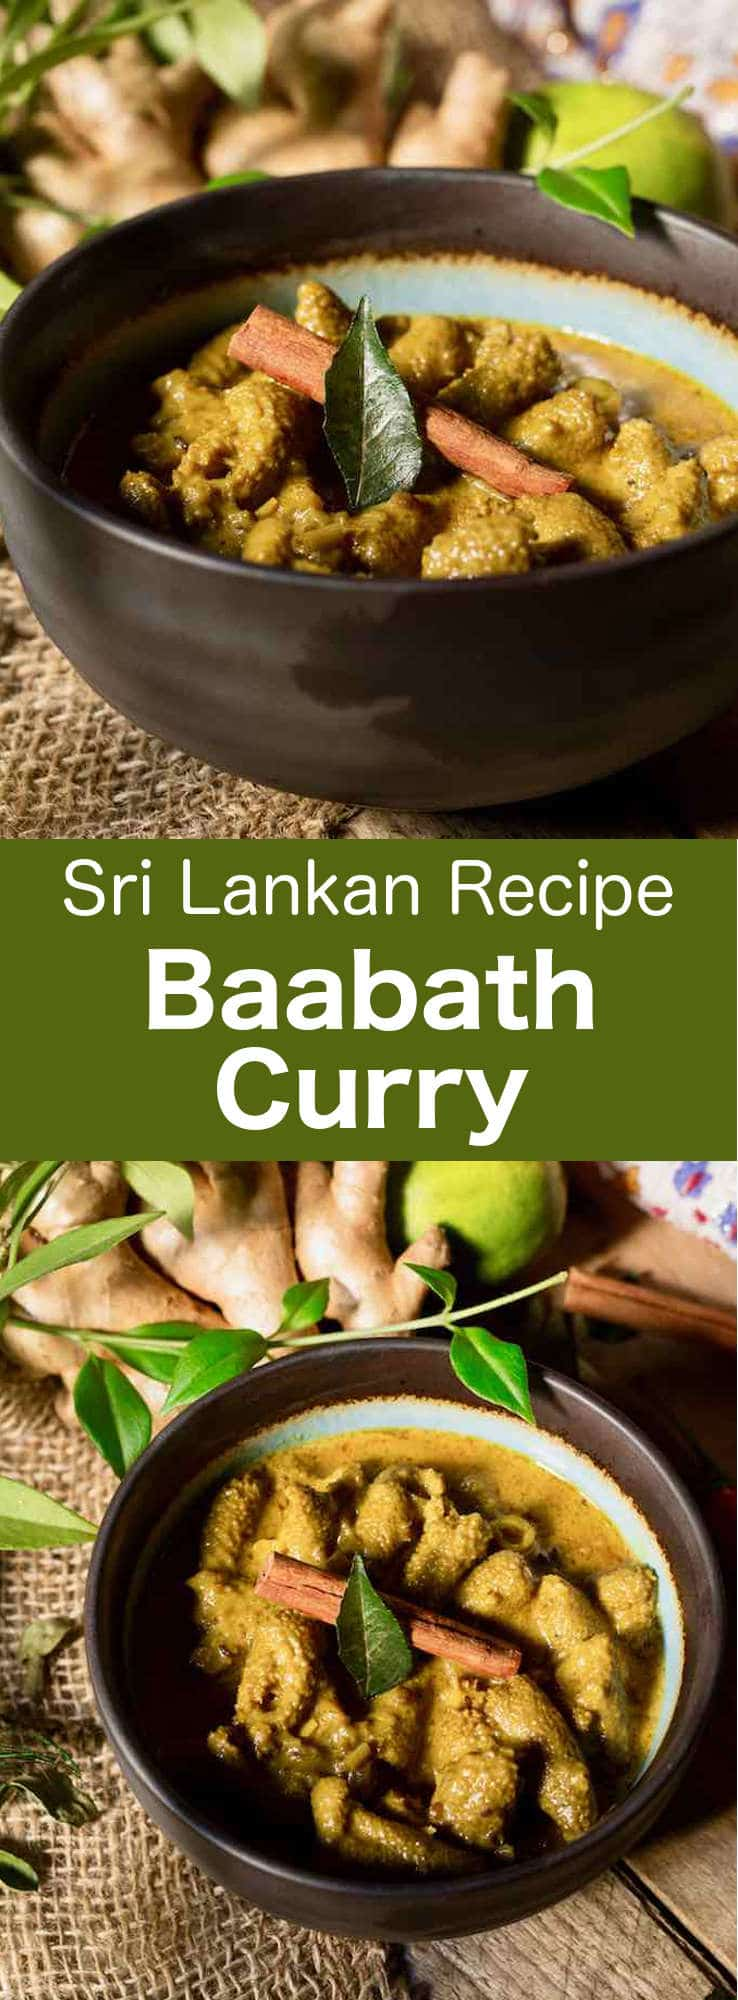 Baabath curry is a delicious traditional Sri Lankan tripe curry, prepared with coconut, lemongrass and various fragrant spices. #SriLanka #SriLankanCuisine #SriLankanCurry #SriLankanRecipe #WorldCuisine #196flavors